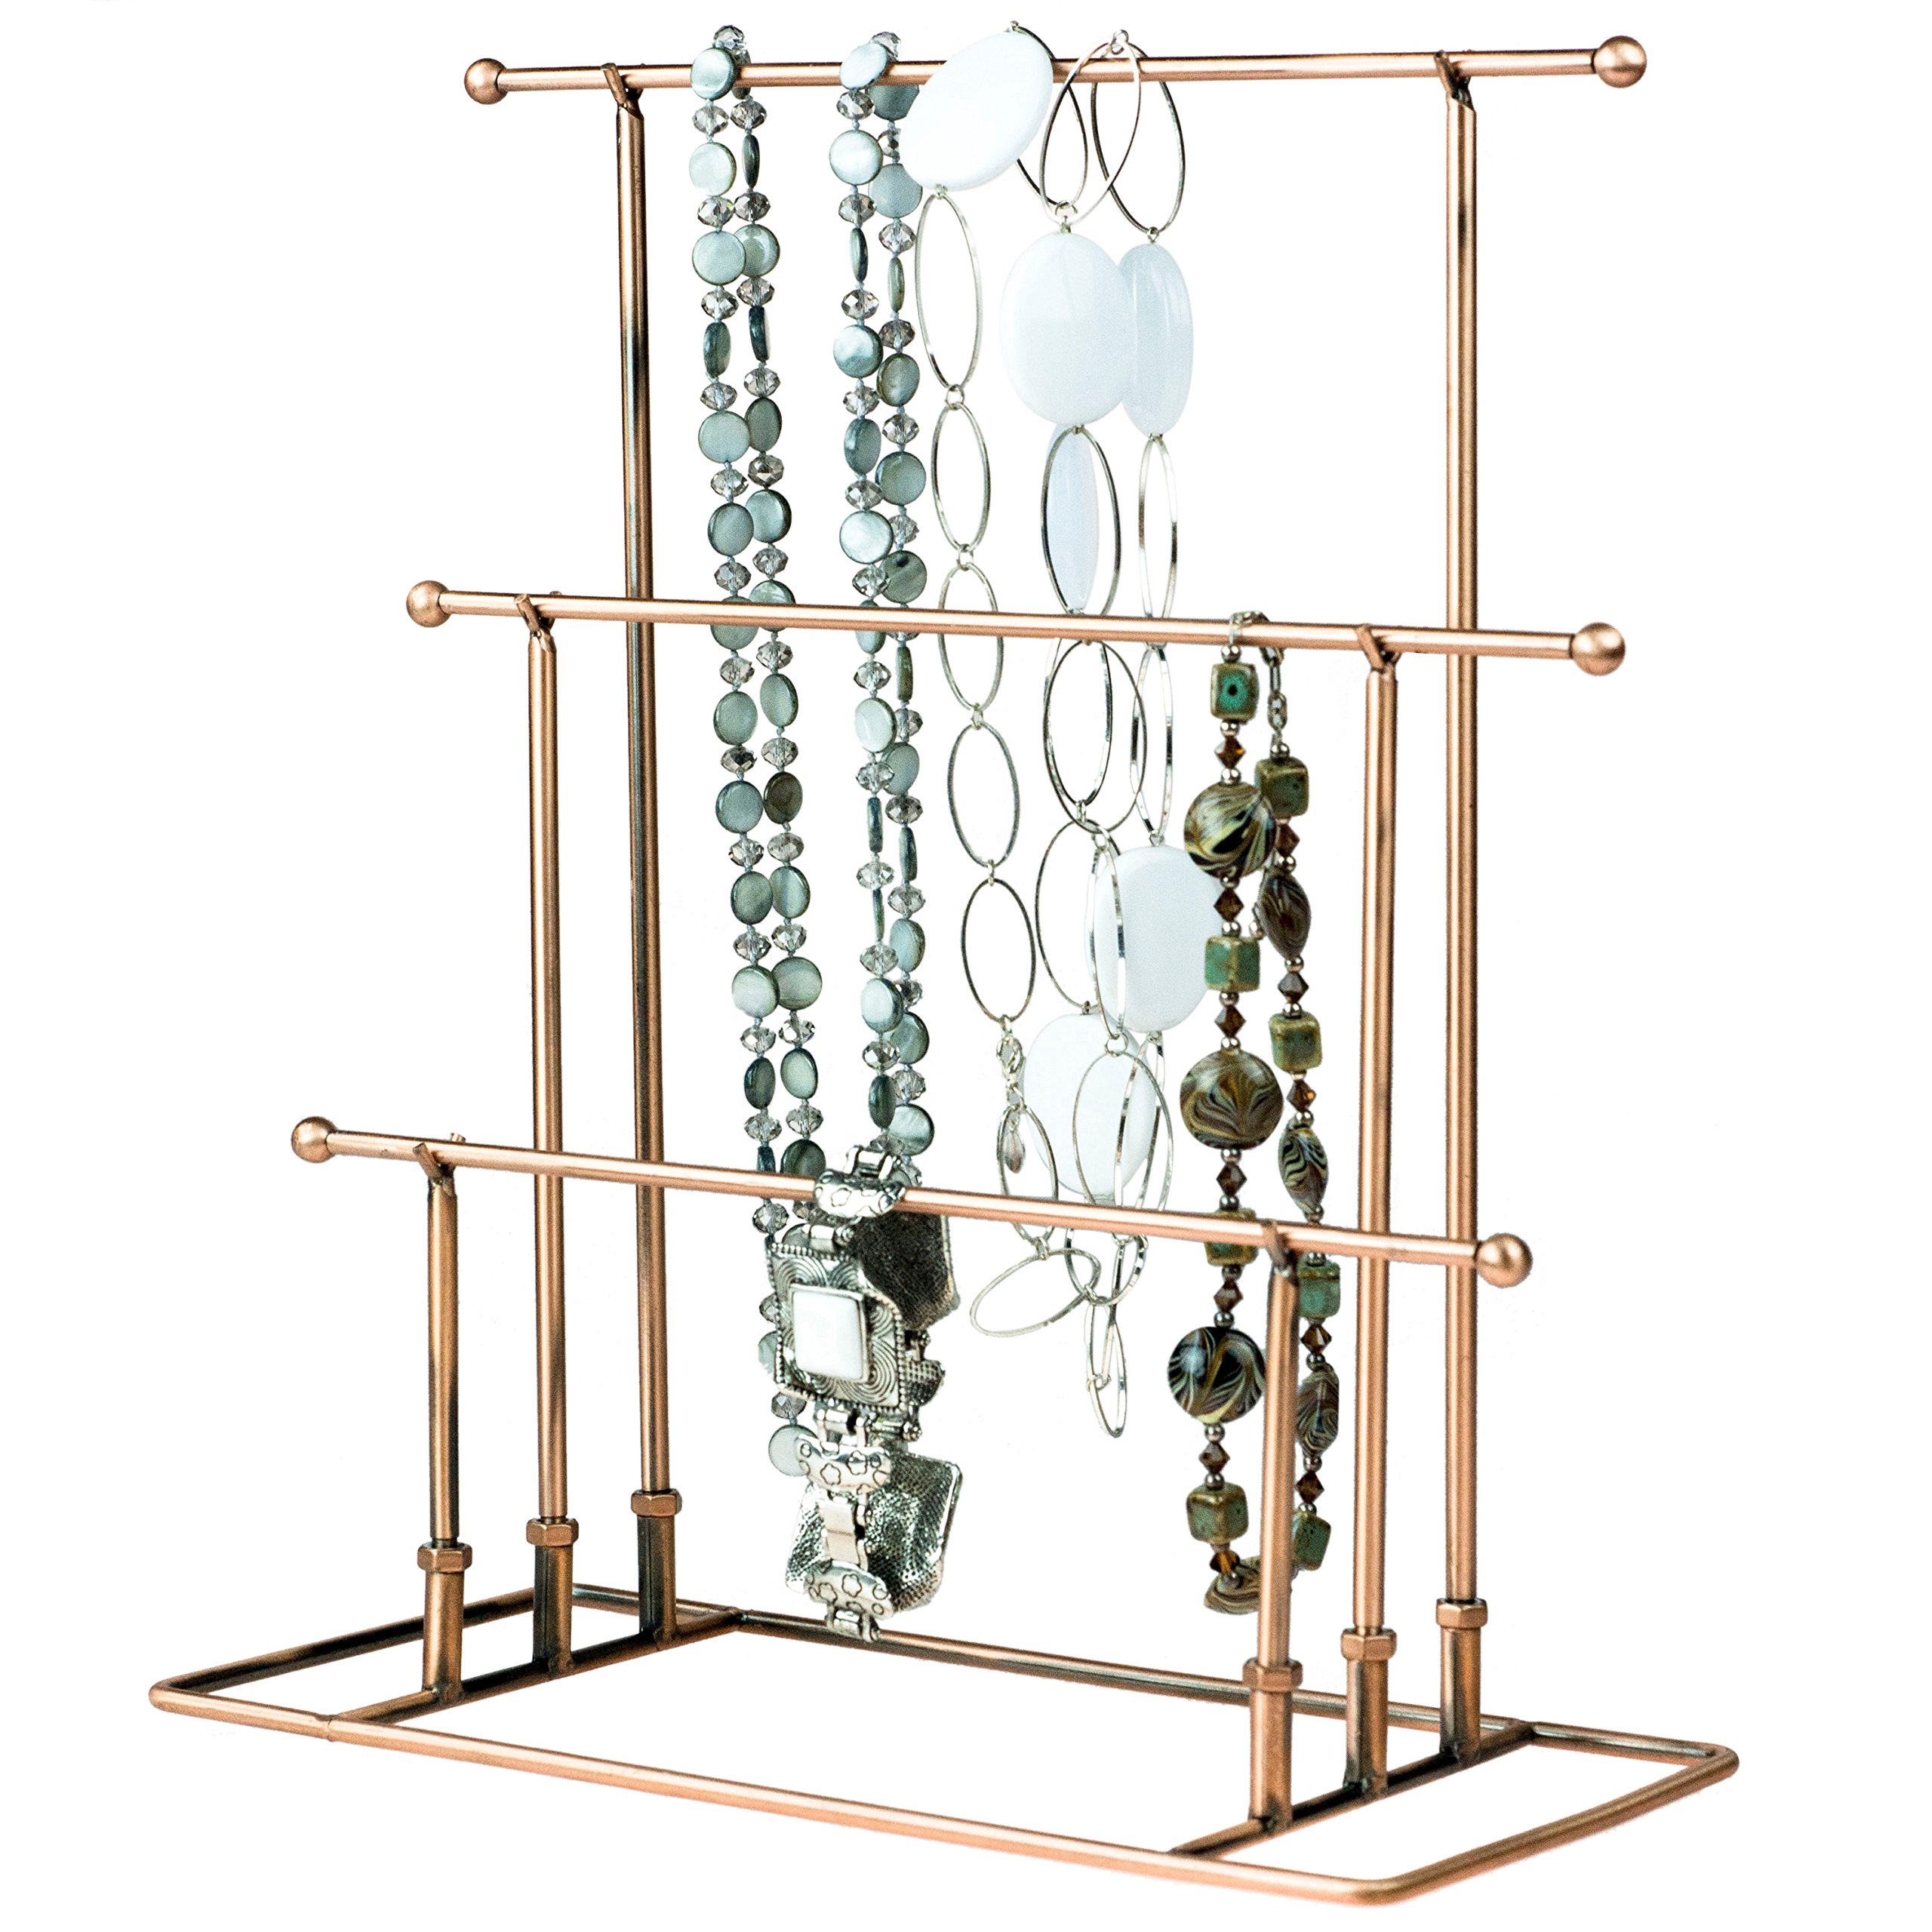 LANTWOO Metal Earring Organizer Jewelry Display Stand for Hanging Earrings Organize 56 Pairs Earrings